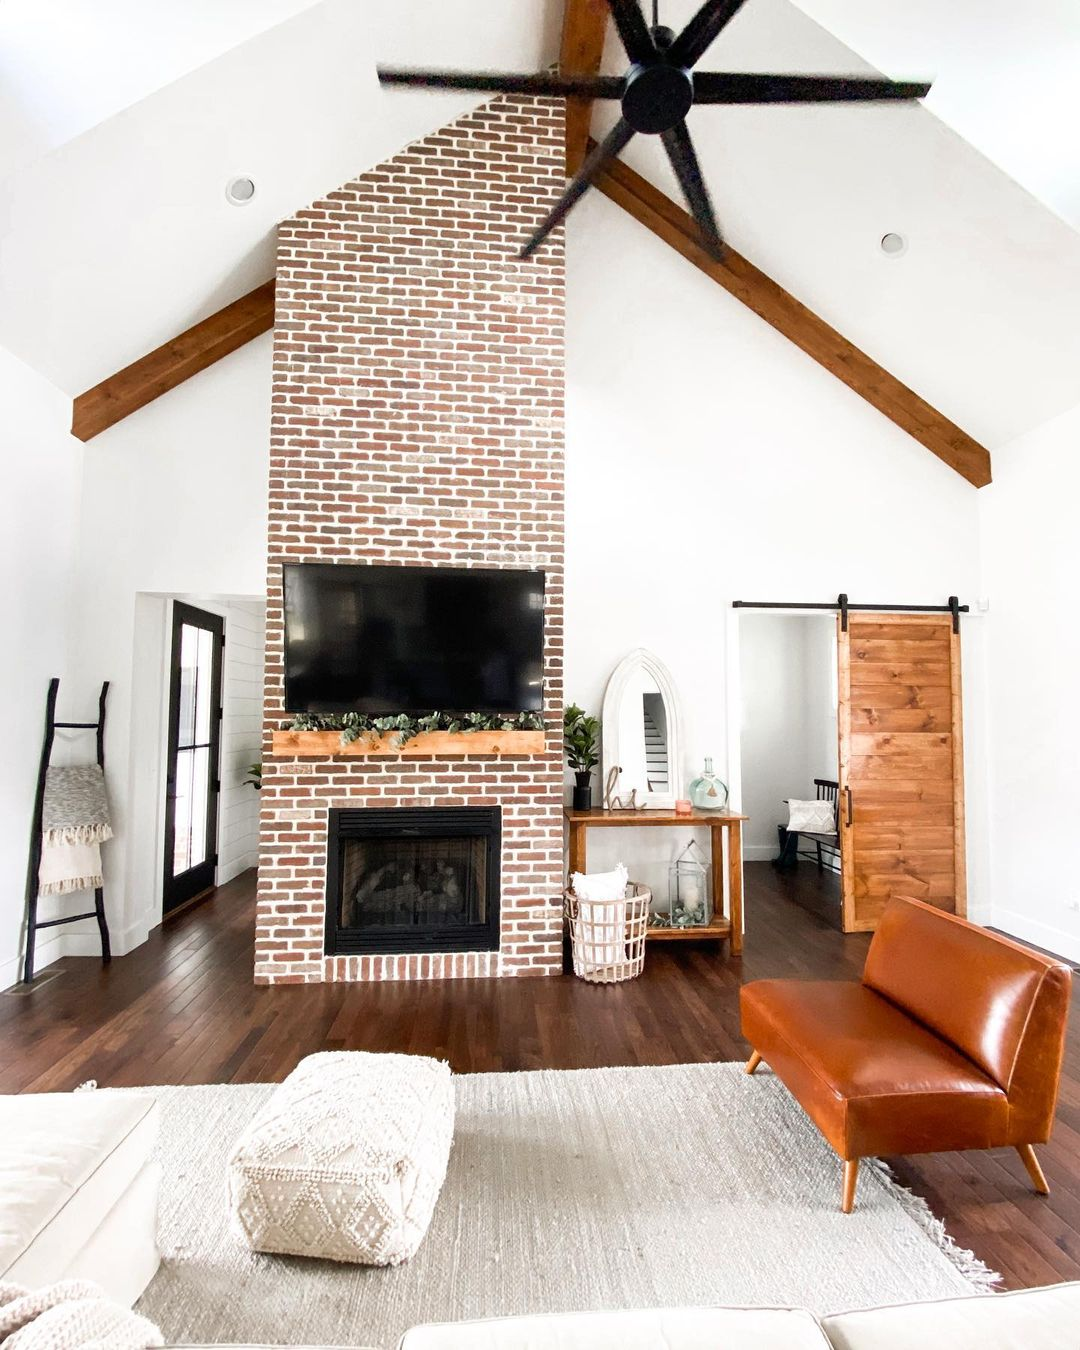 Peppermill-ThinBrickFireplace-@keeverfarmhouse-2